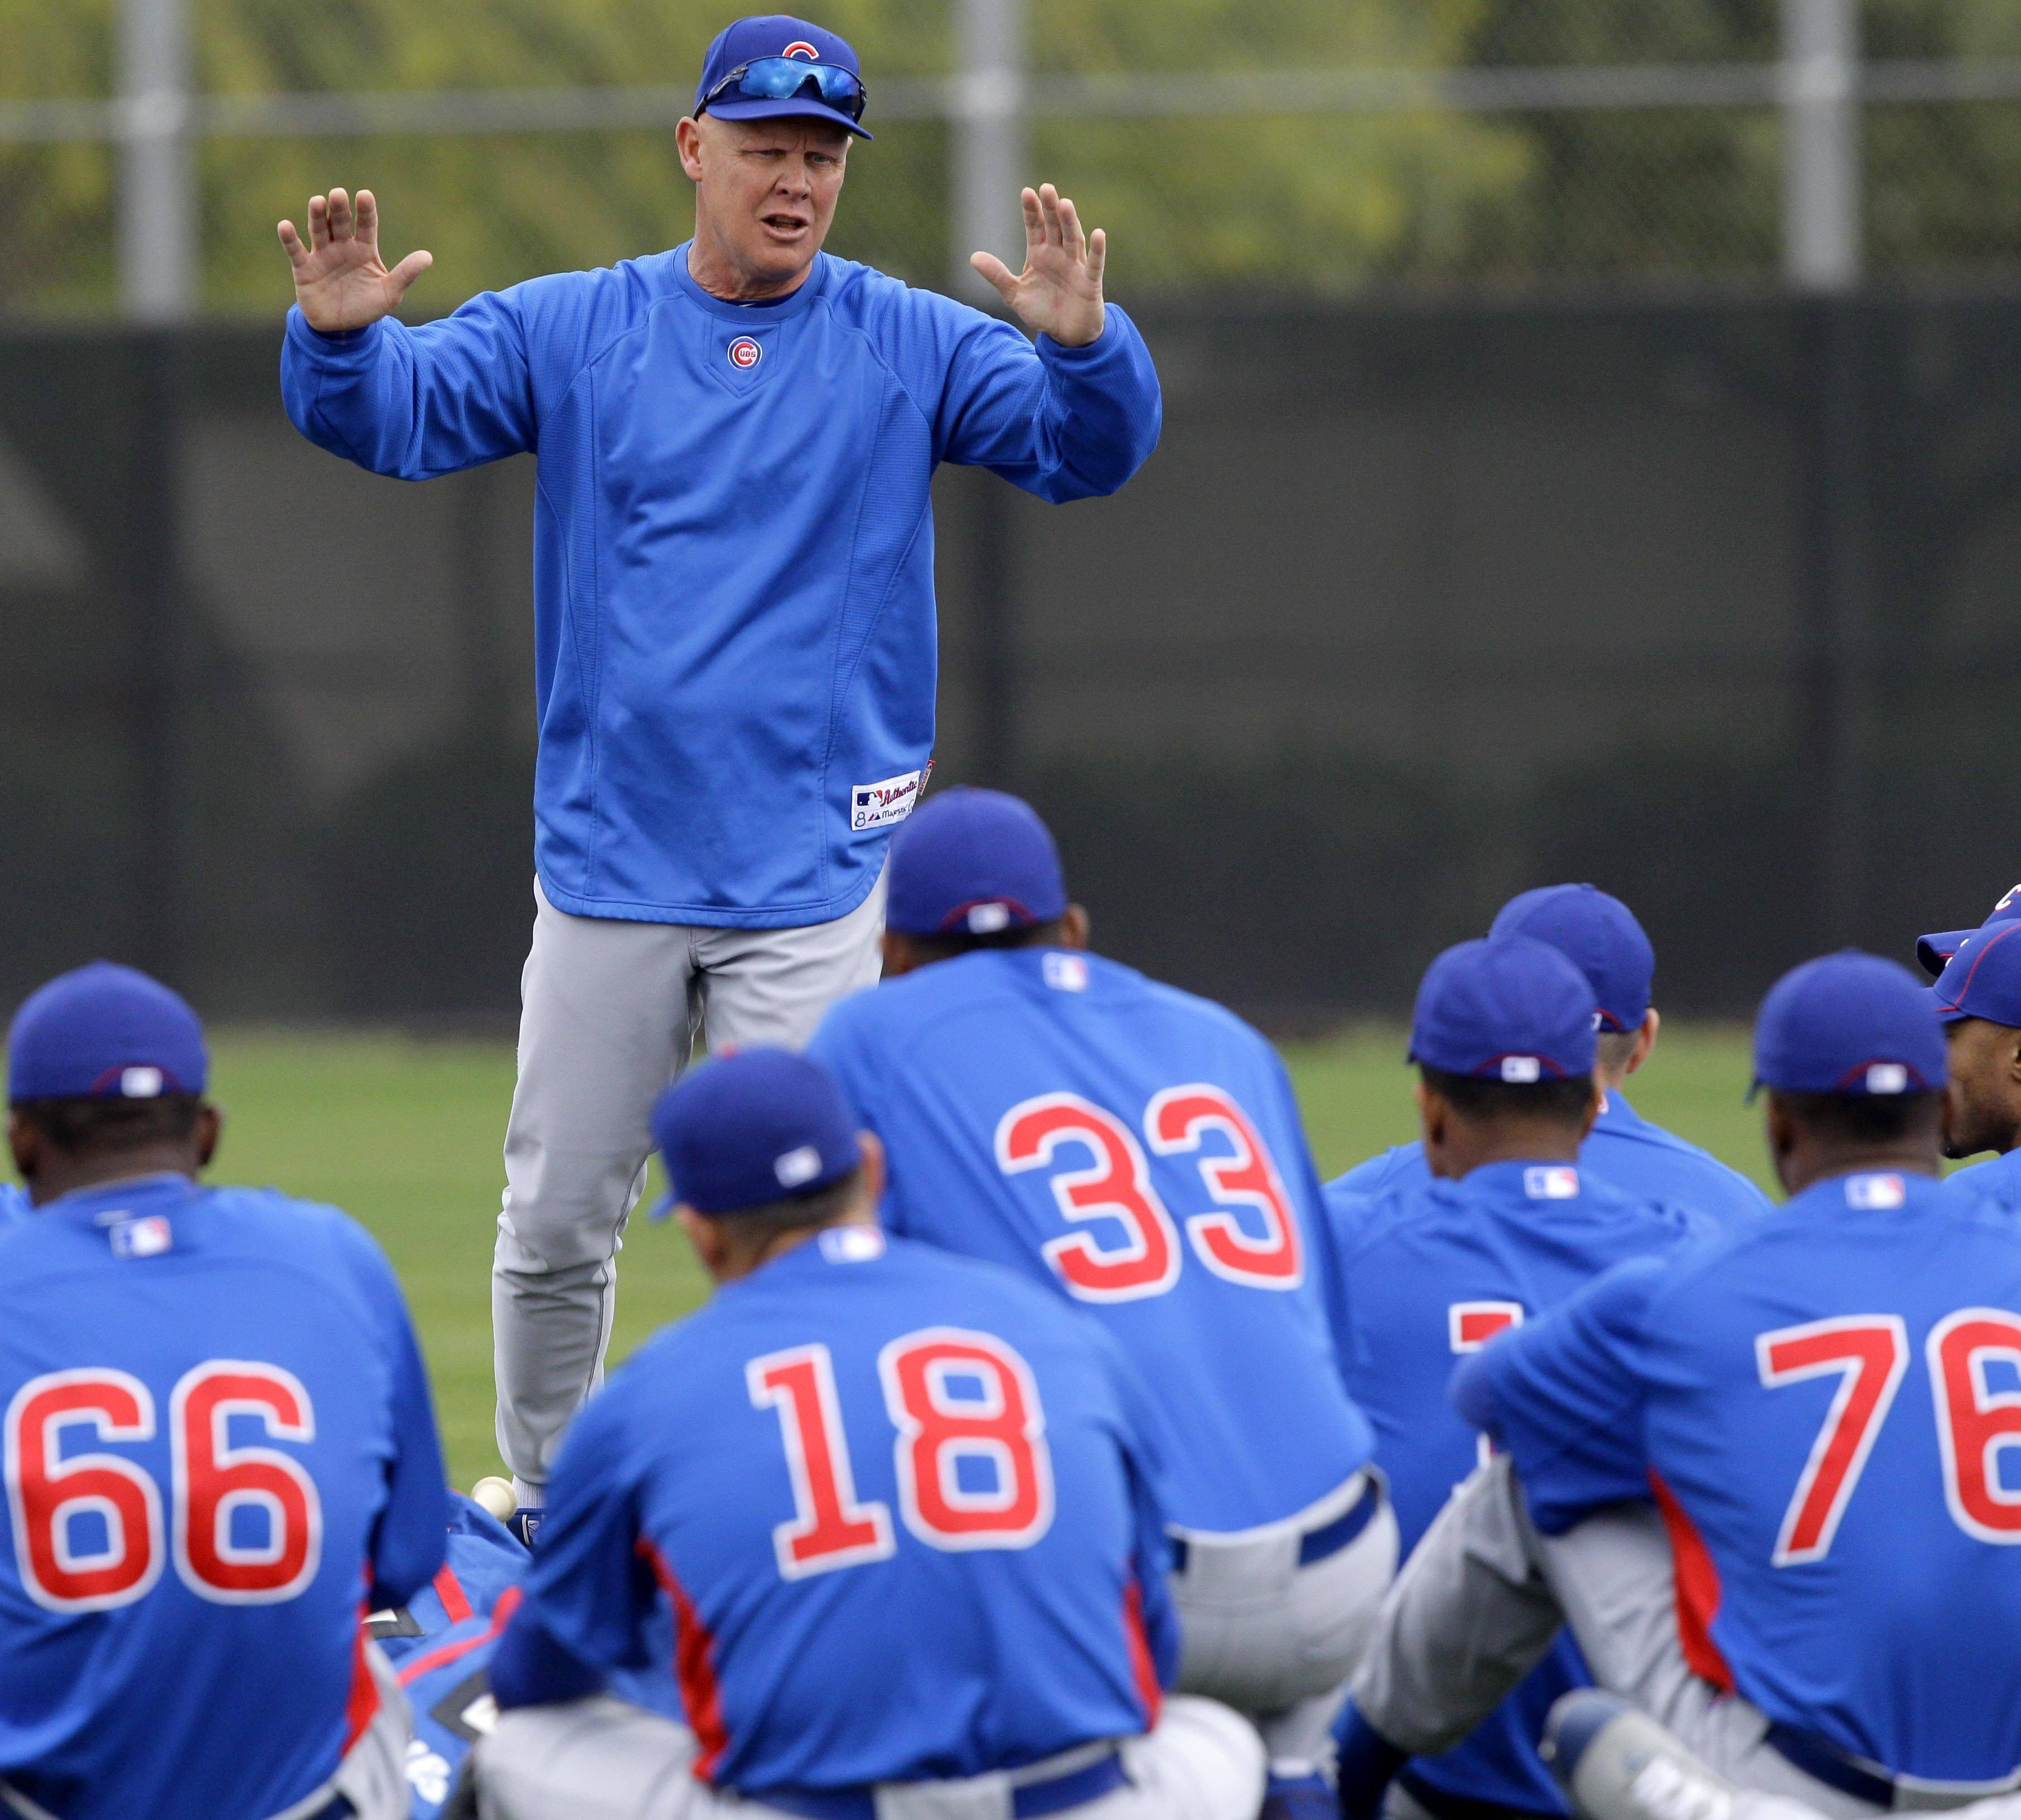 Cubs manager Mike Quade, here talking with his team at the start of spring training camp in Mesa, Ariz., looks at his role much like a teacher.